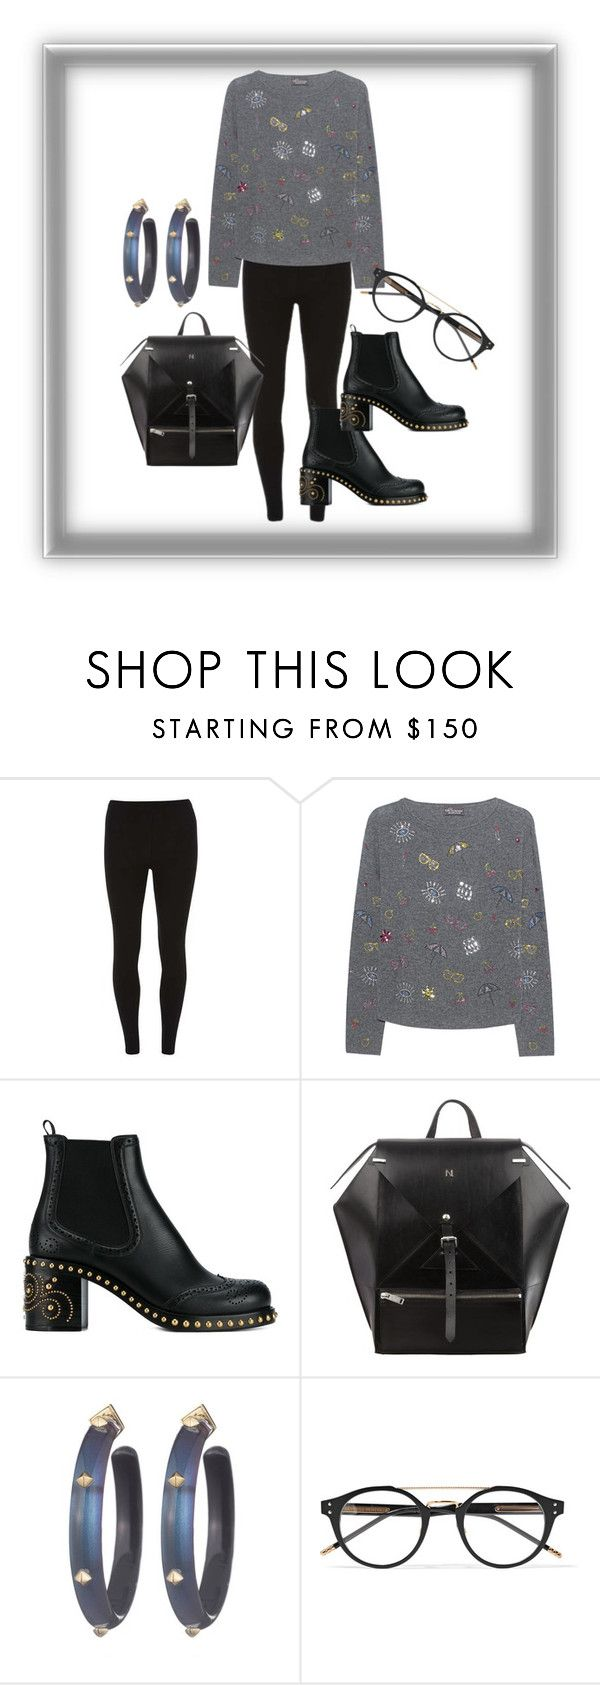 """Hitting the sales"" by ellemcbeer ❤ liked on Polyvore featuring Dorothy Perkins, Princess Goes Hollywood, Miu Miu, Alexis Bittar and Bottega Veneta"